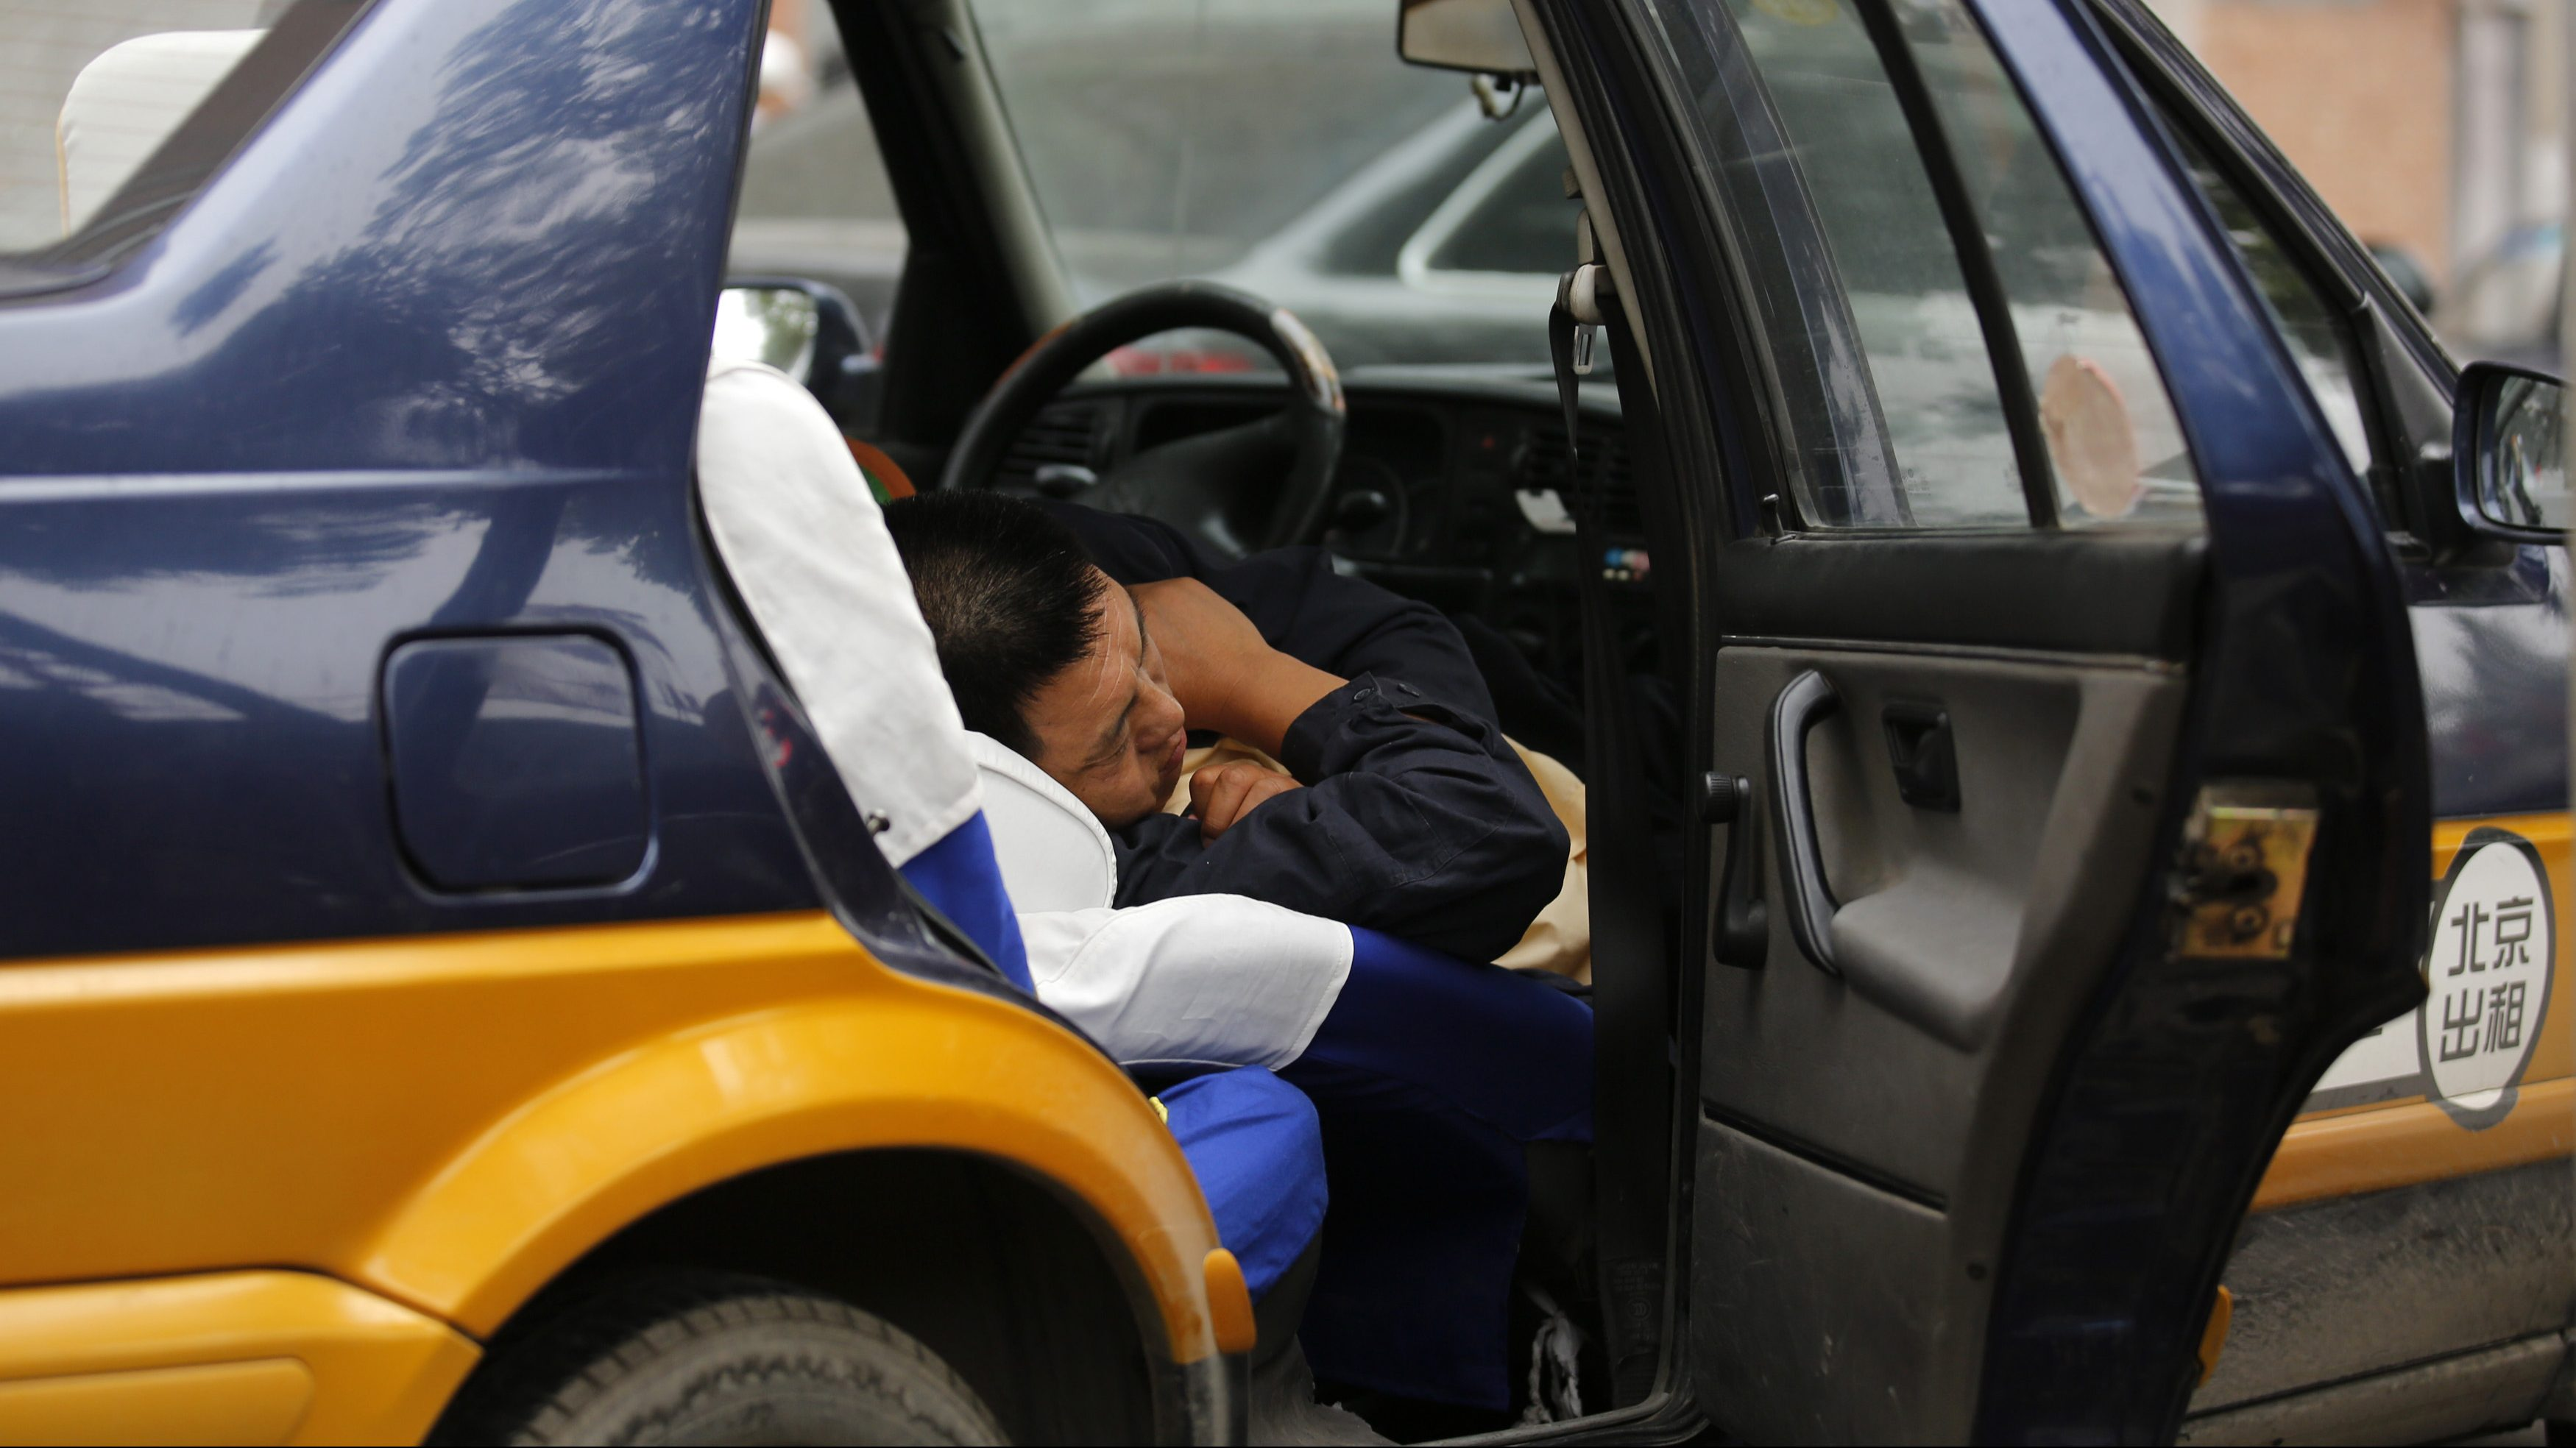 A taxi driver take a nap inside the taxi in Beijing June 6, 2013. Activity in China's services sector expanded in May but at a pace little changed from the month before, the latest sign that the world's No. 2 economy is struggling to regain momentum. REUTERS/Kim Kyung-Hoon (CHINA - Tags: BUSINESS) - GM1E9661D4601